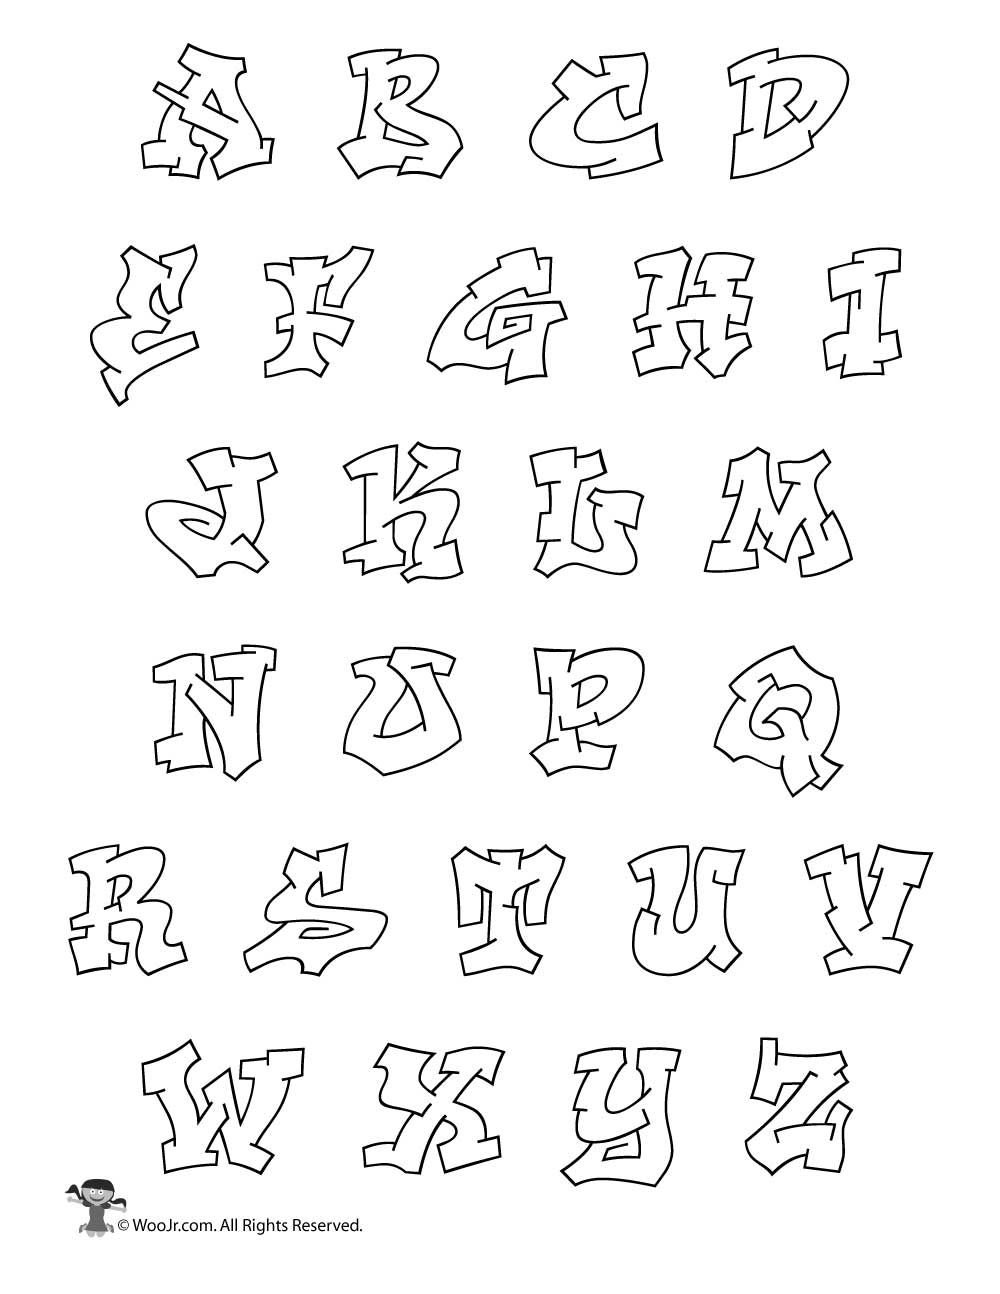 printable graffiti bubble letters alphabet | hip hop coloring book